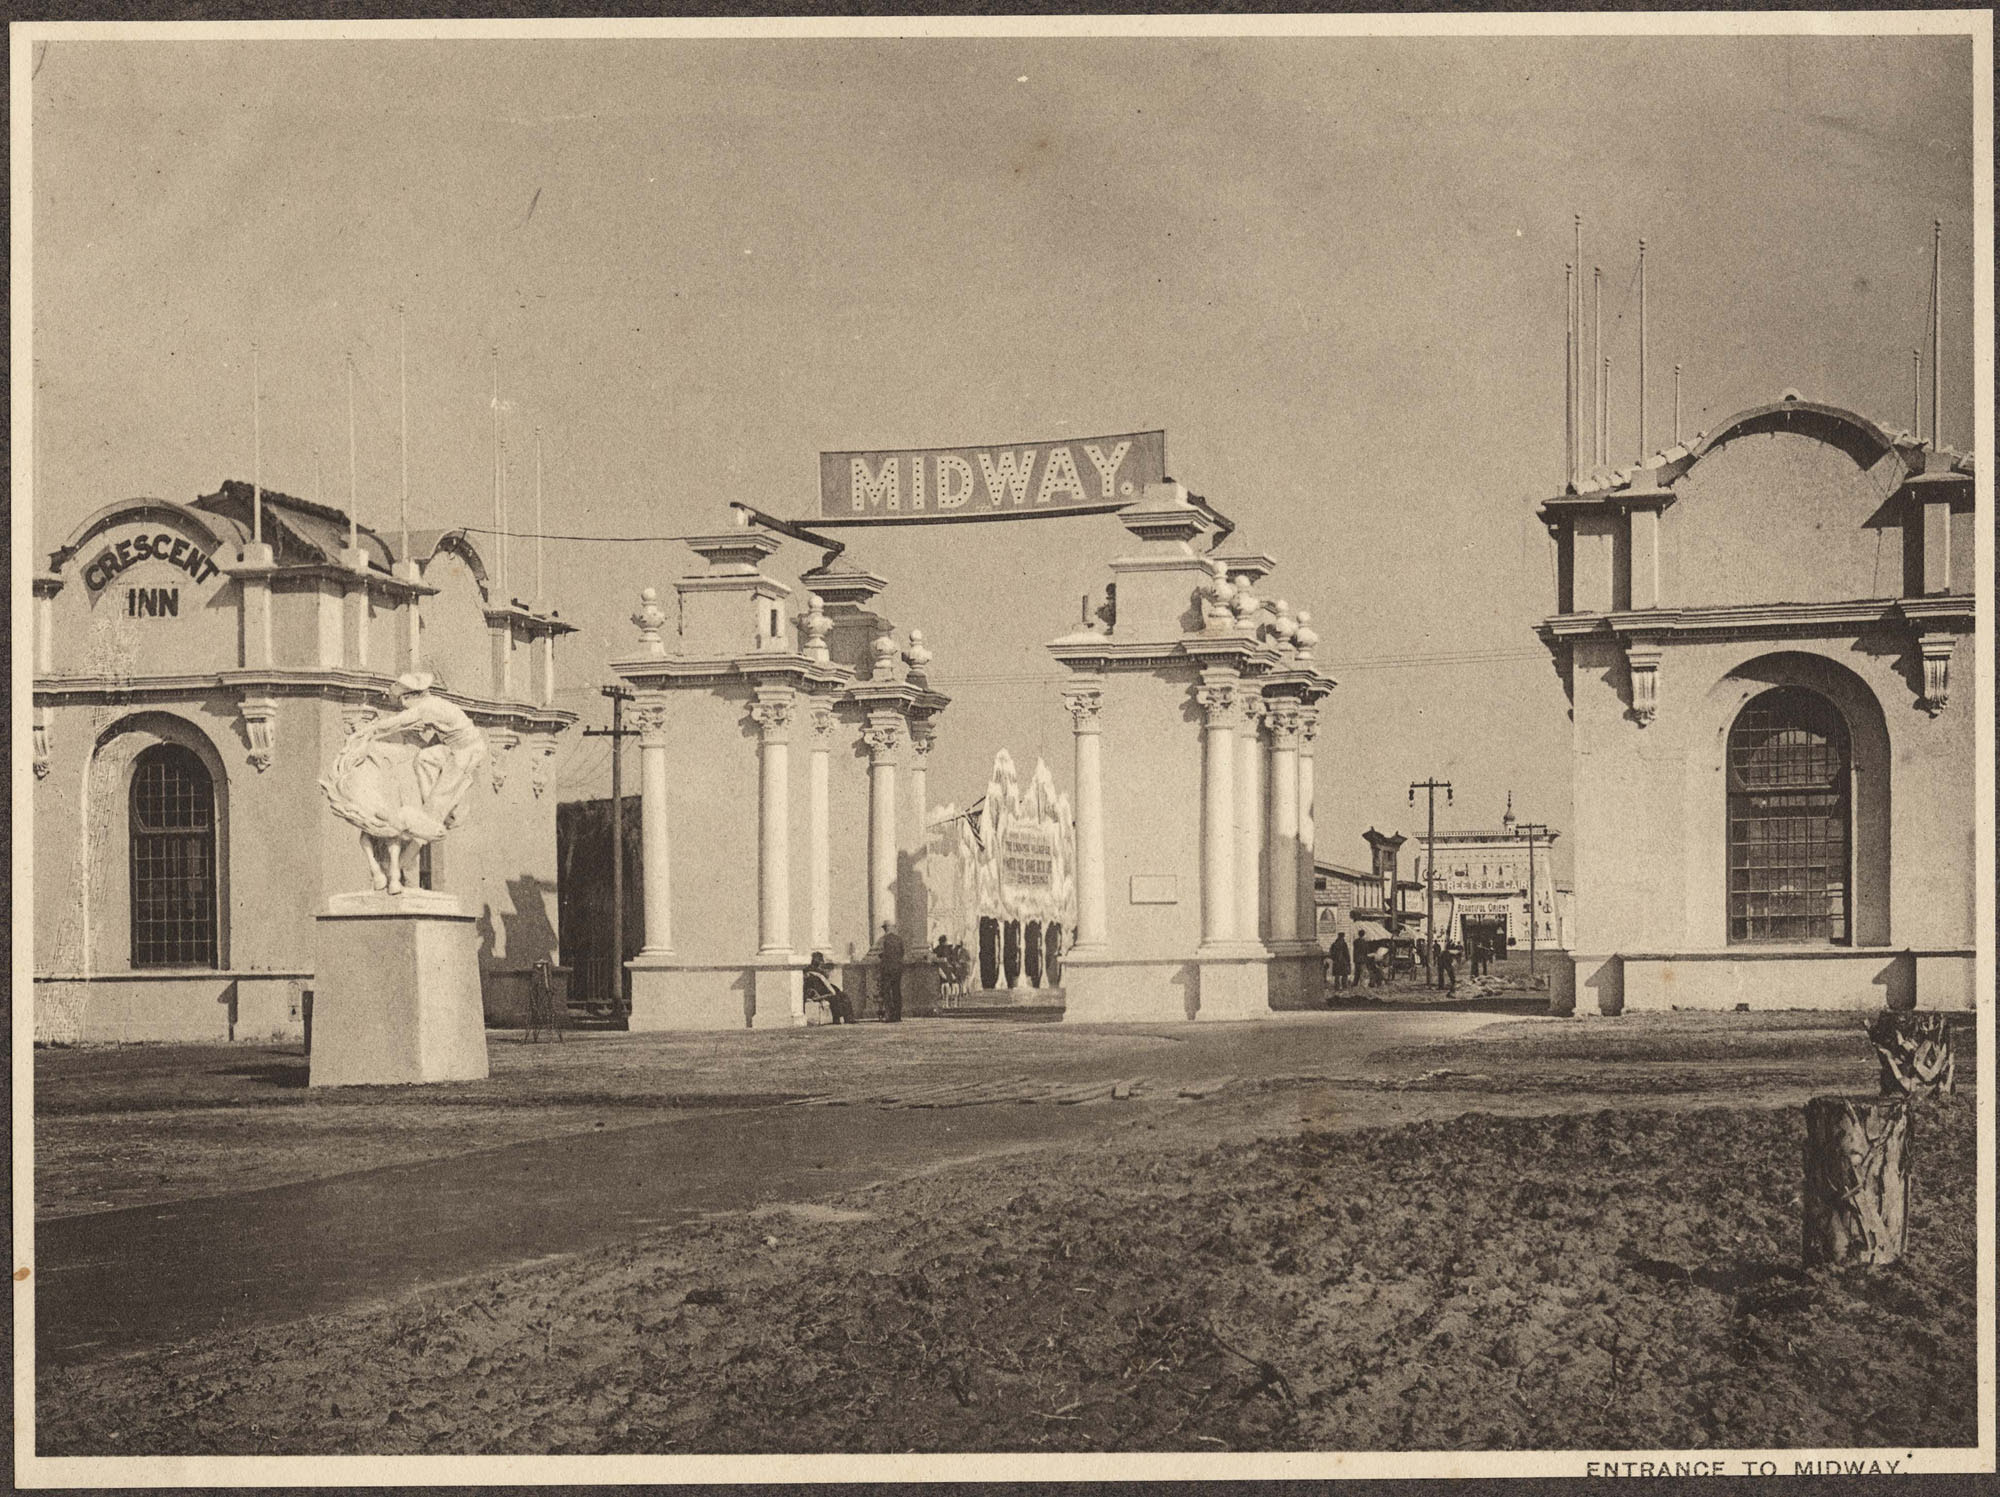 Entrance to Midway